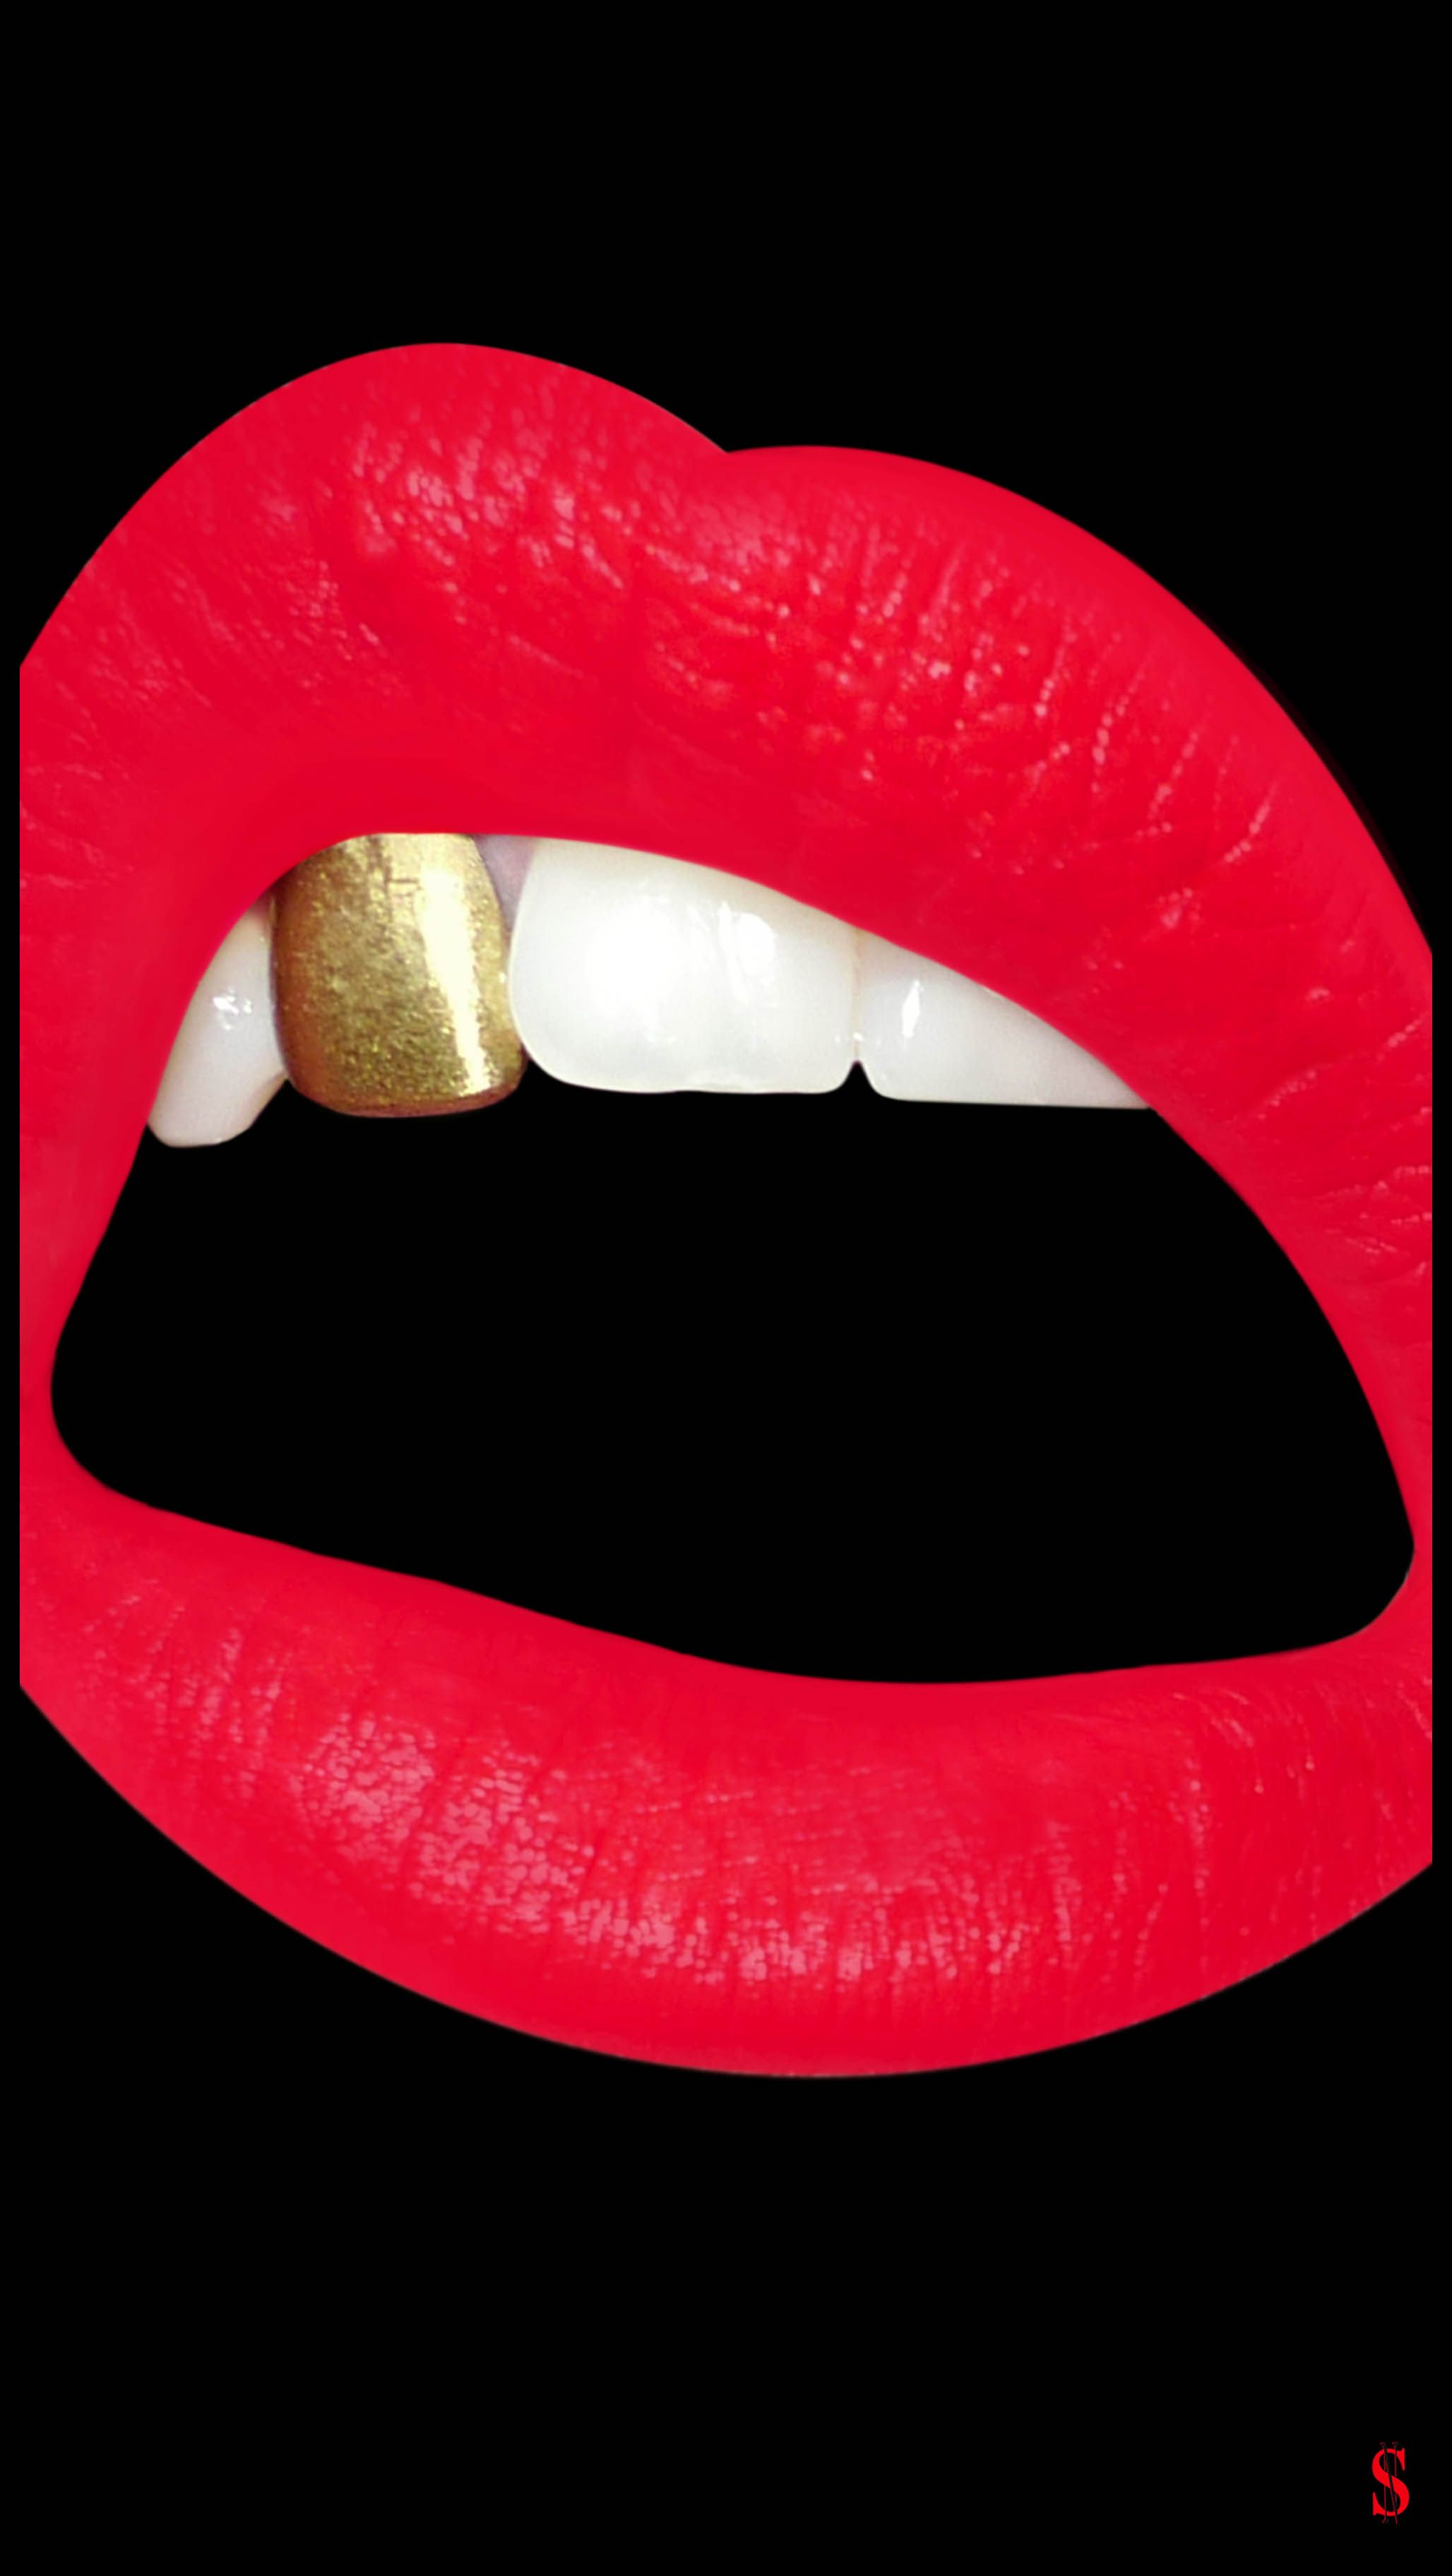 Dr Doll Art Grillz Girls With Grills Grillz Gold Teeth